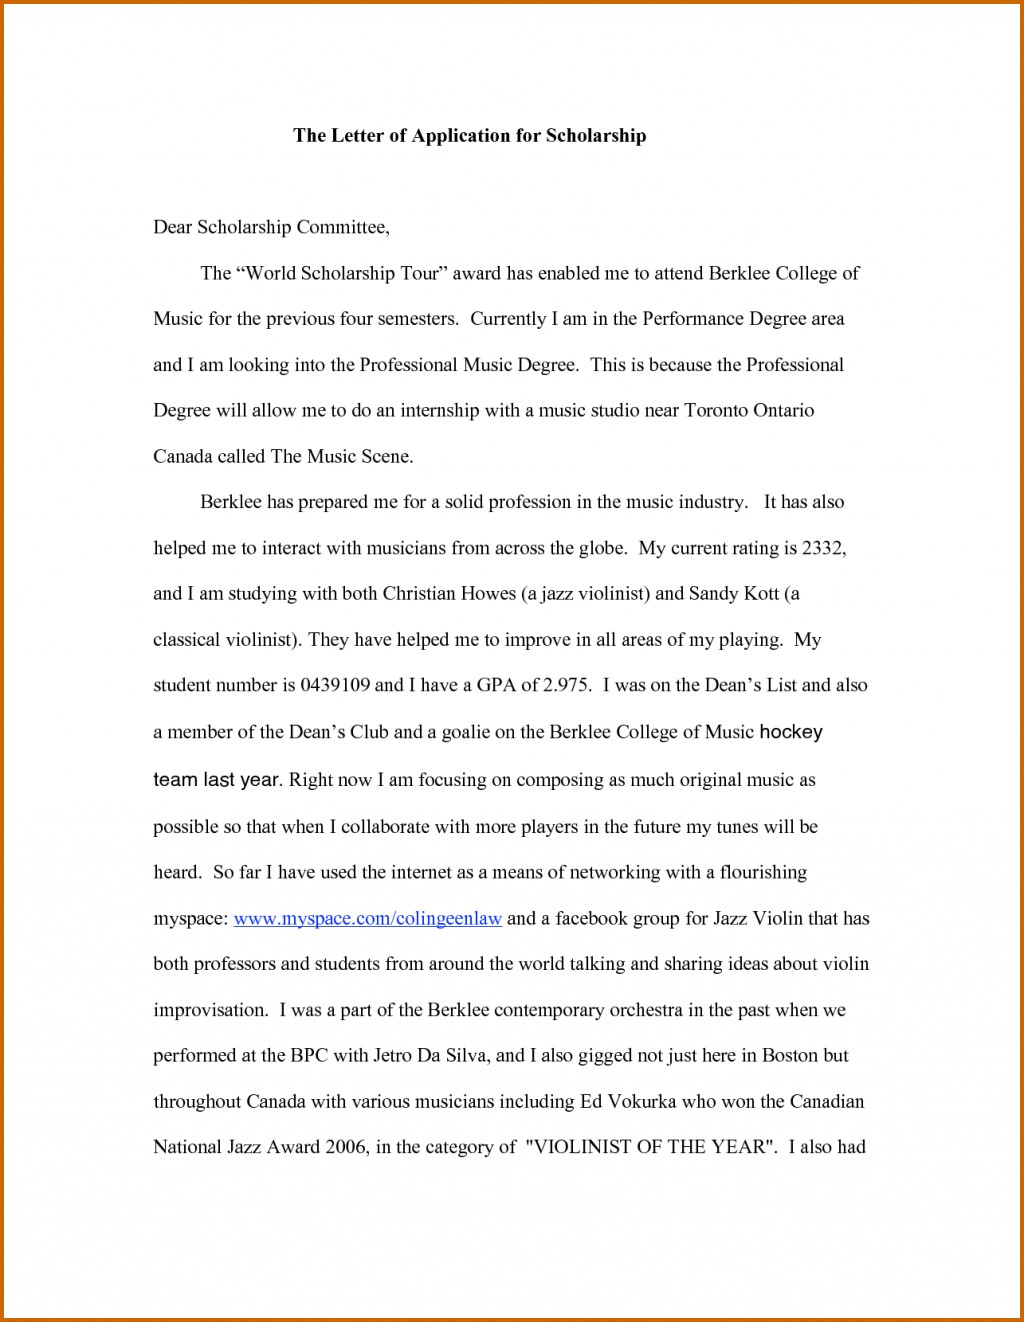 009 Essay Example How To Write Application For Scholarship Unusual Essays Topics 2017 Format Prompts Large